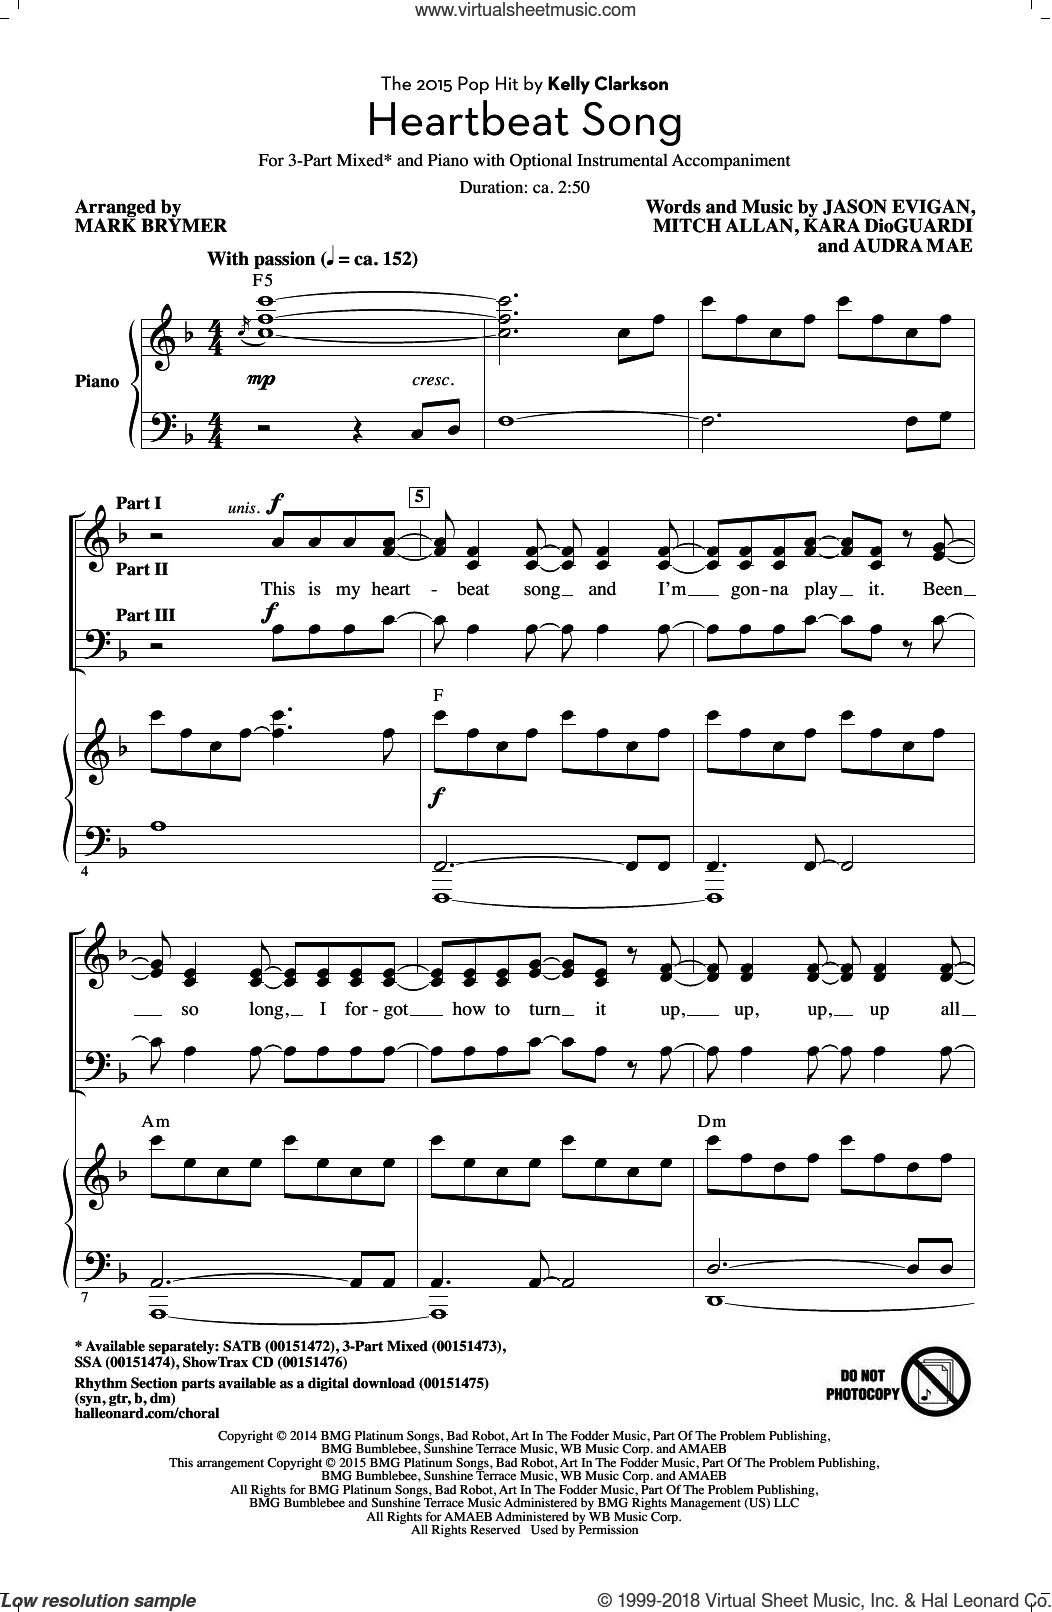 Heartbeat Song (arr. Mark Brymer) sheet music for choir (3-Part Mixed) by Kara DioGuardi, Mark Brymer, Kelly Clarkson, Audra Mae, Jason Evigan and Mitch Allan, intermediate skill level